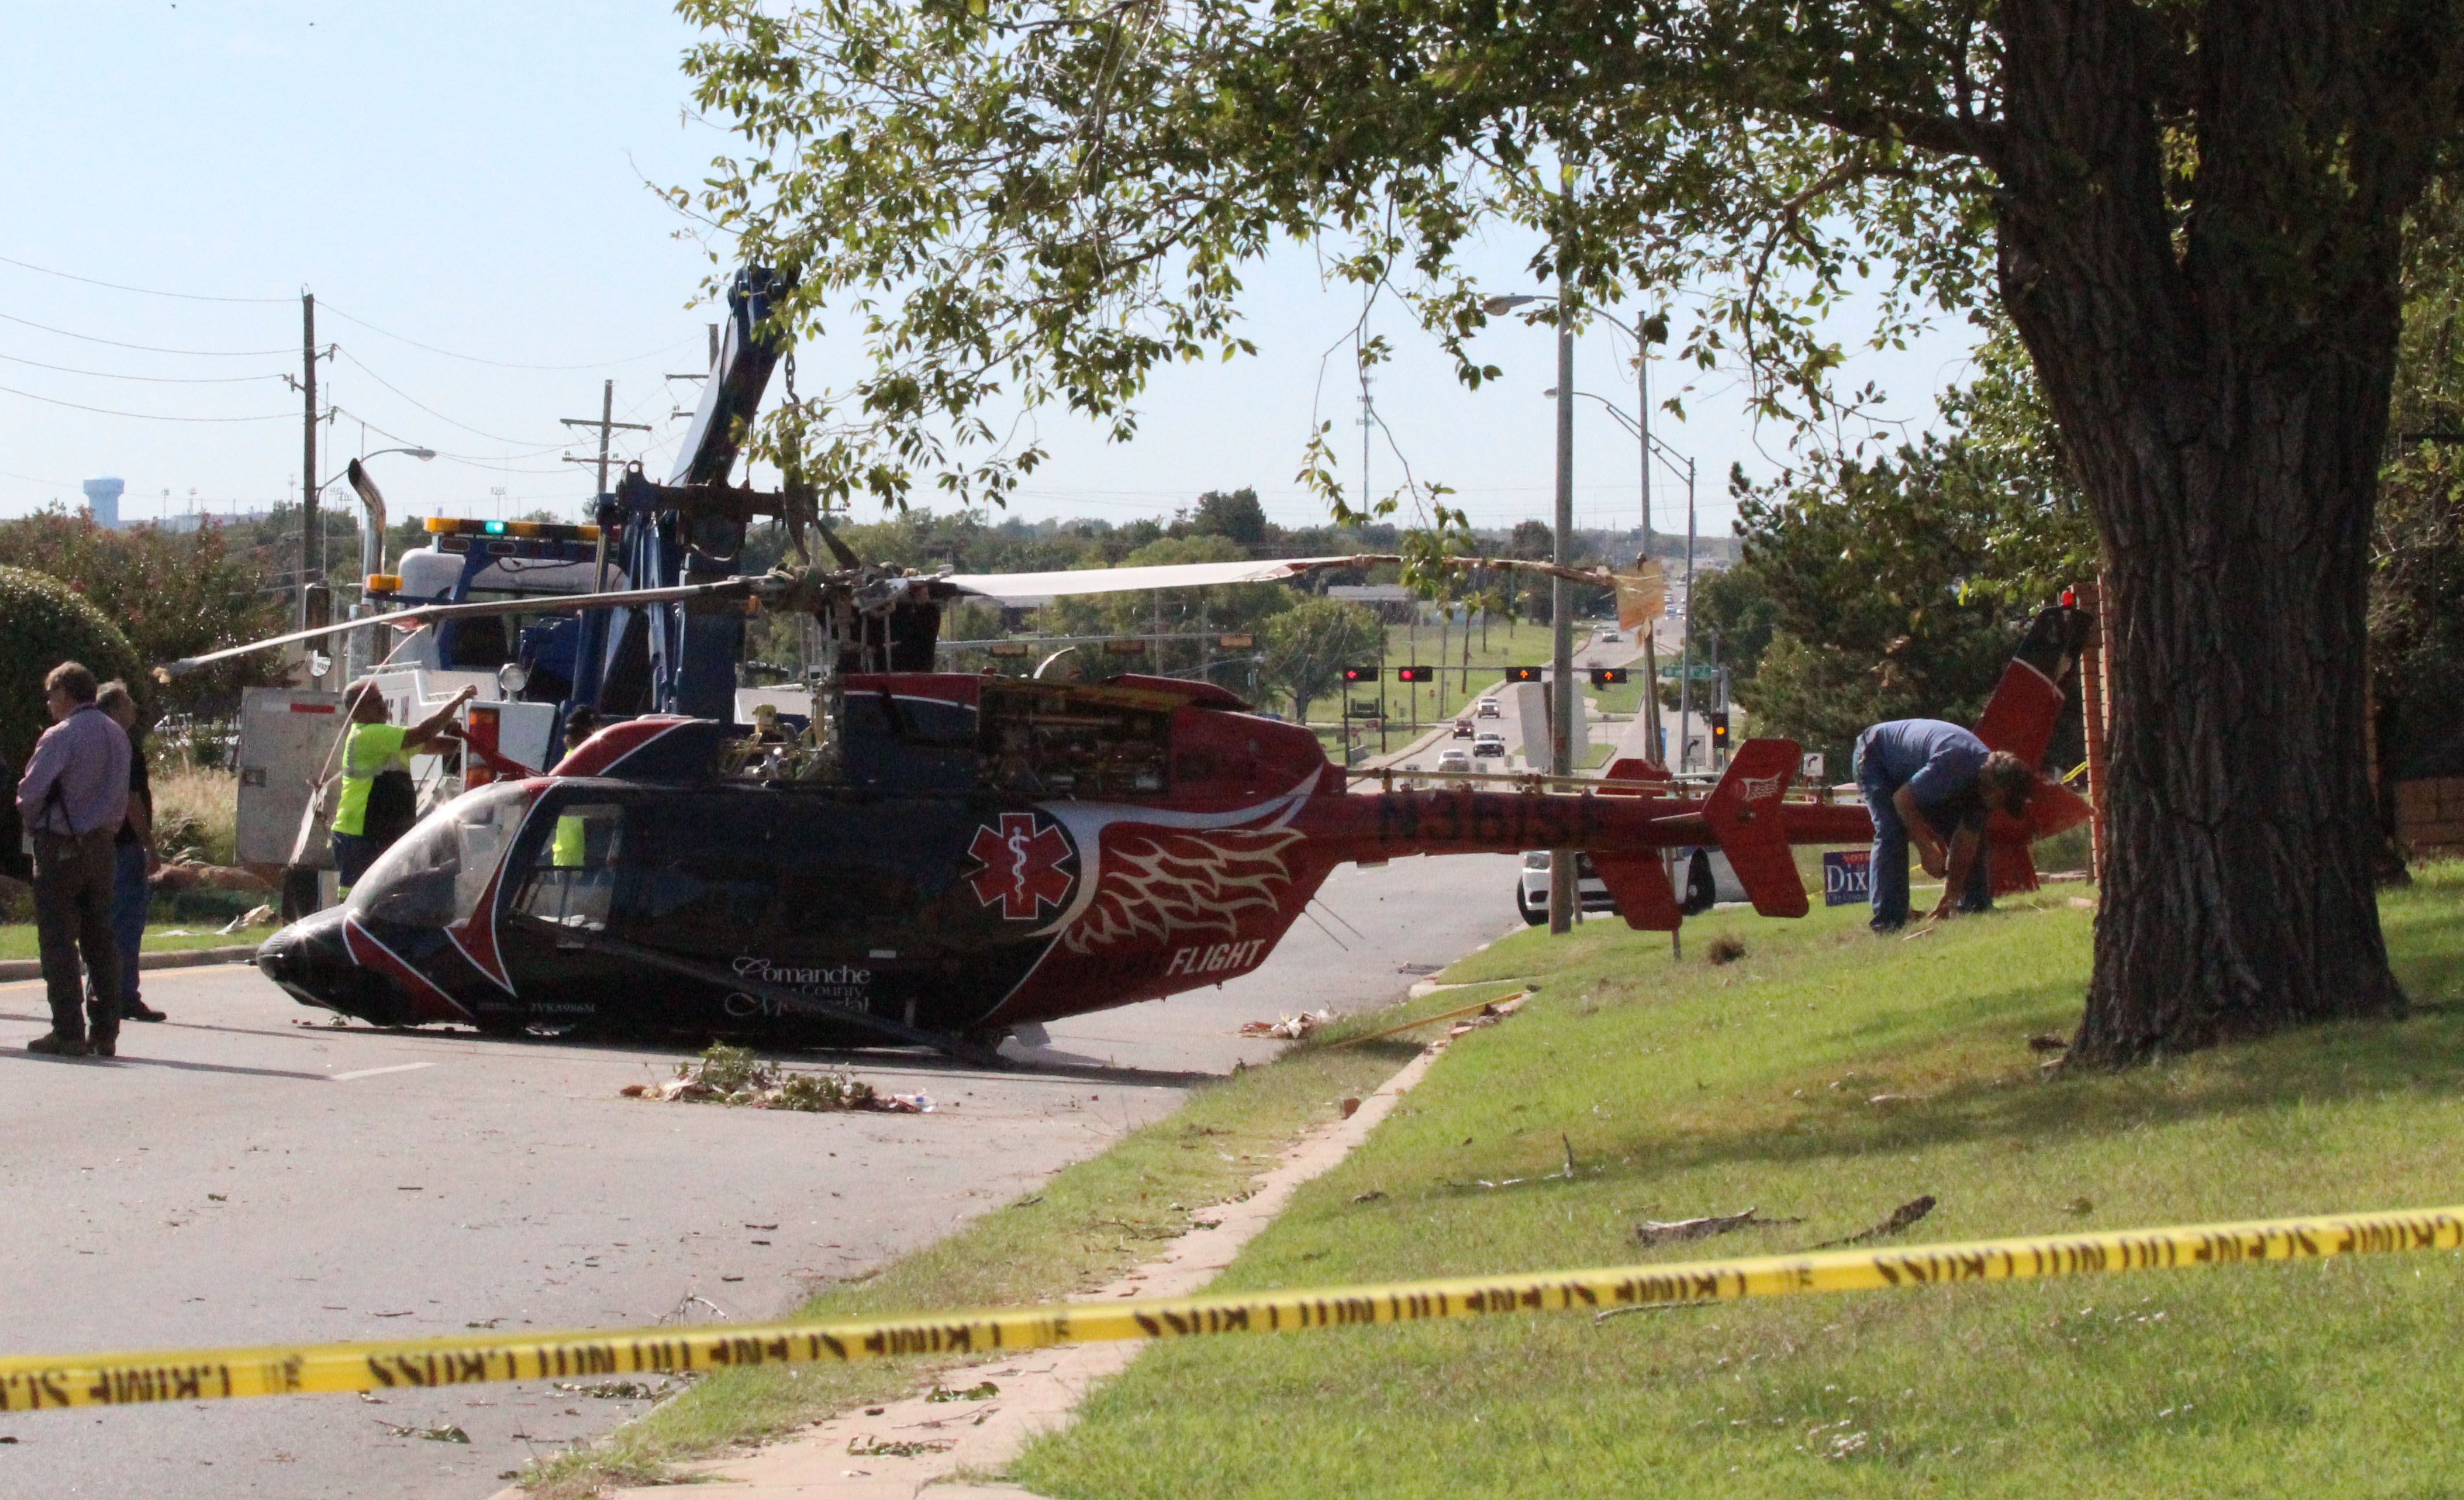 Helicopter Crash Causes Congested Traffic